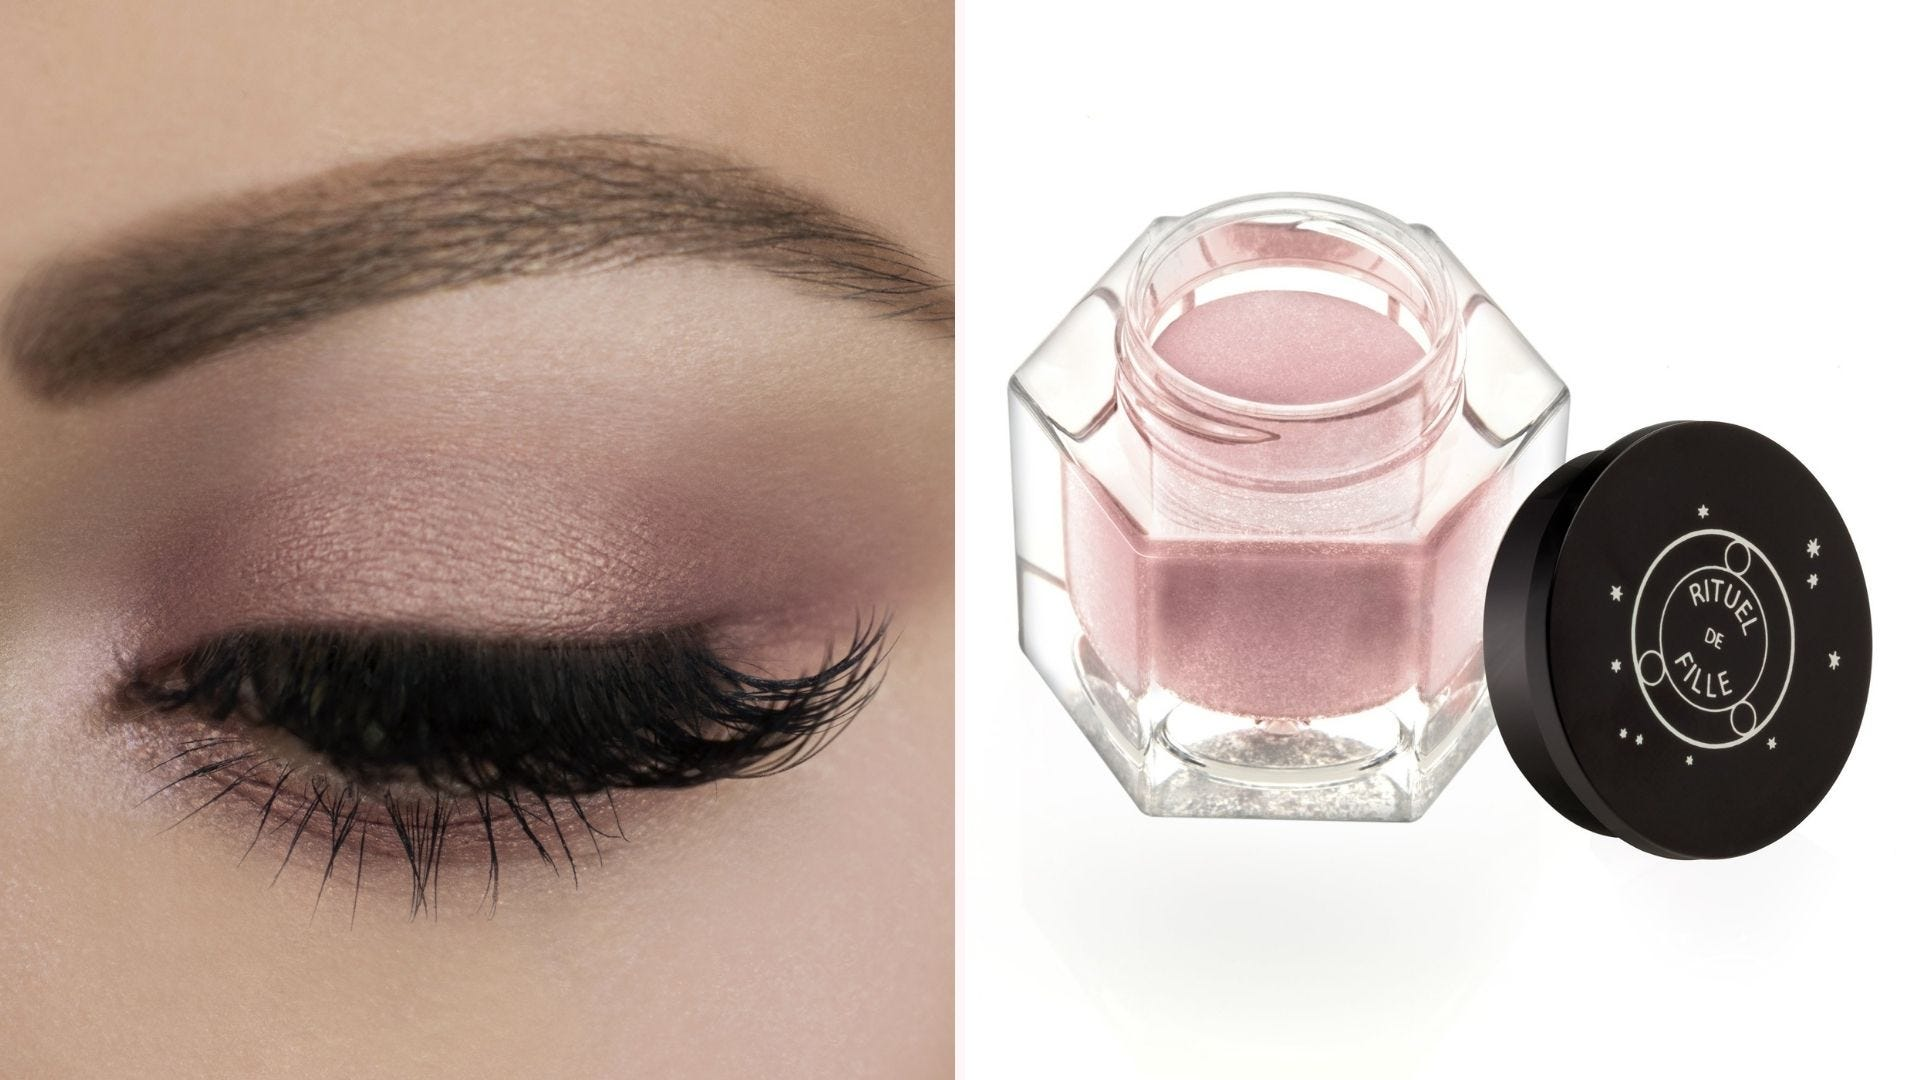 On the left, a closeup of an eye look using Ash and Ember Eye Soot, and on the right, a container of the eyeshadow on a white background.